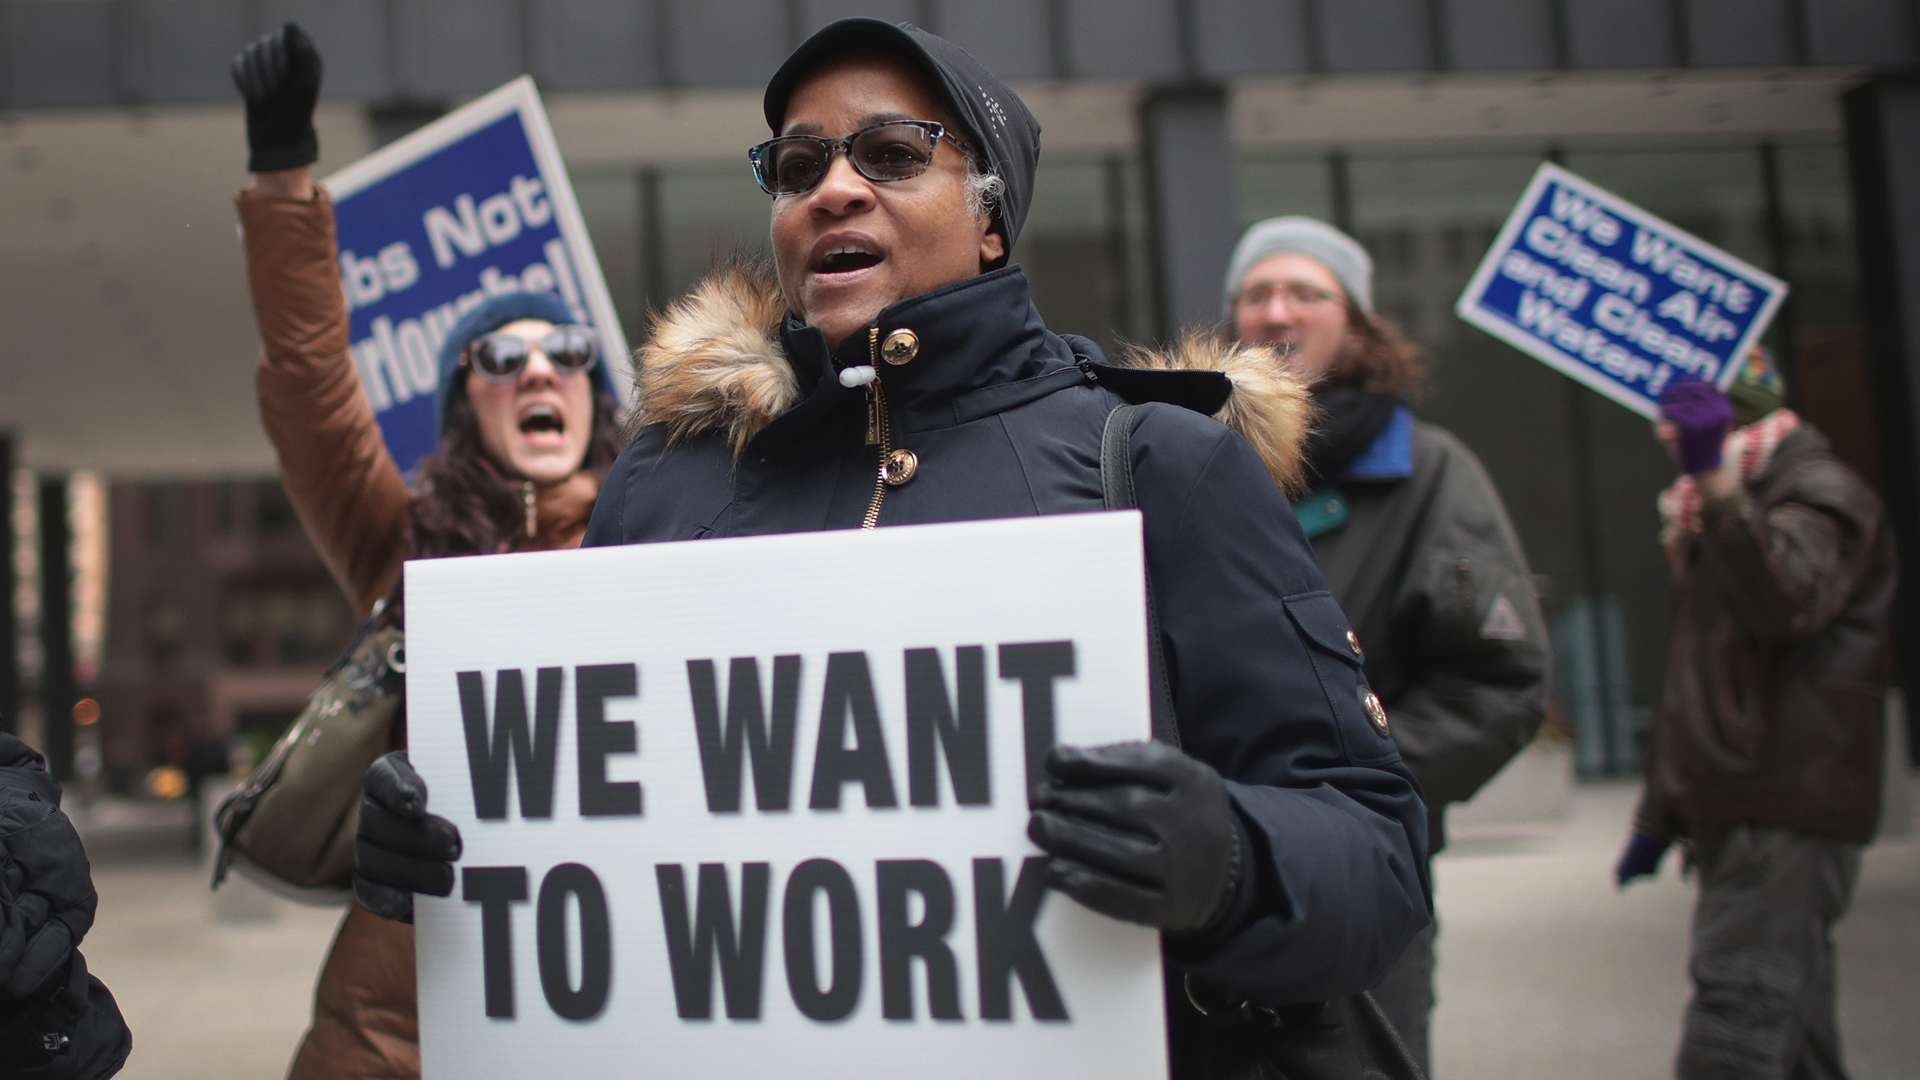 Government workers protest the government shutdown during a demonstration in the Federal Building Plaza on Jan. 10, 2019, in Chicago, Illinois. (Credit: Scott Olson/Getty Images)